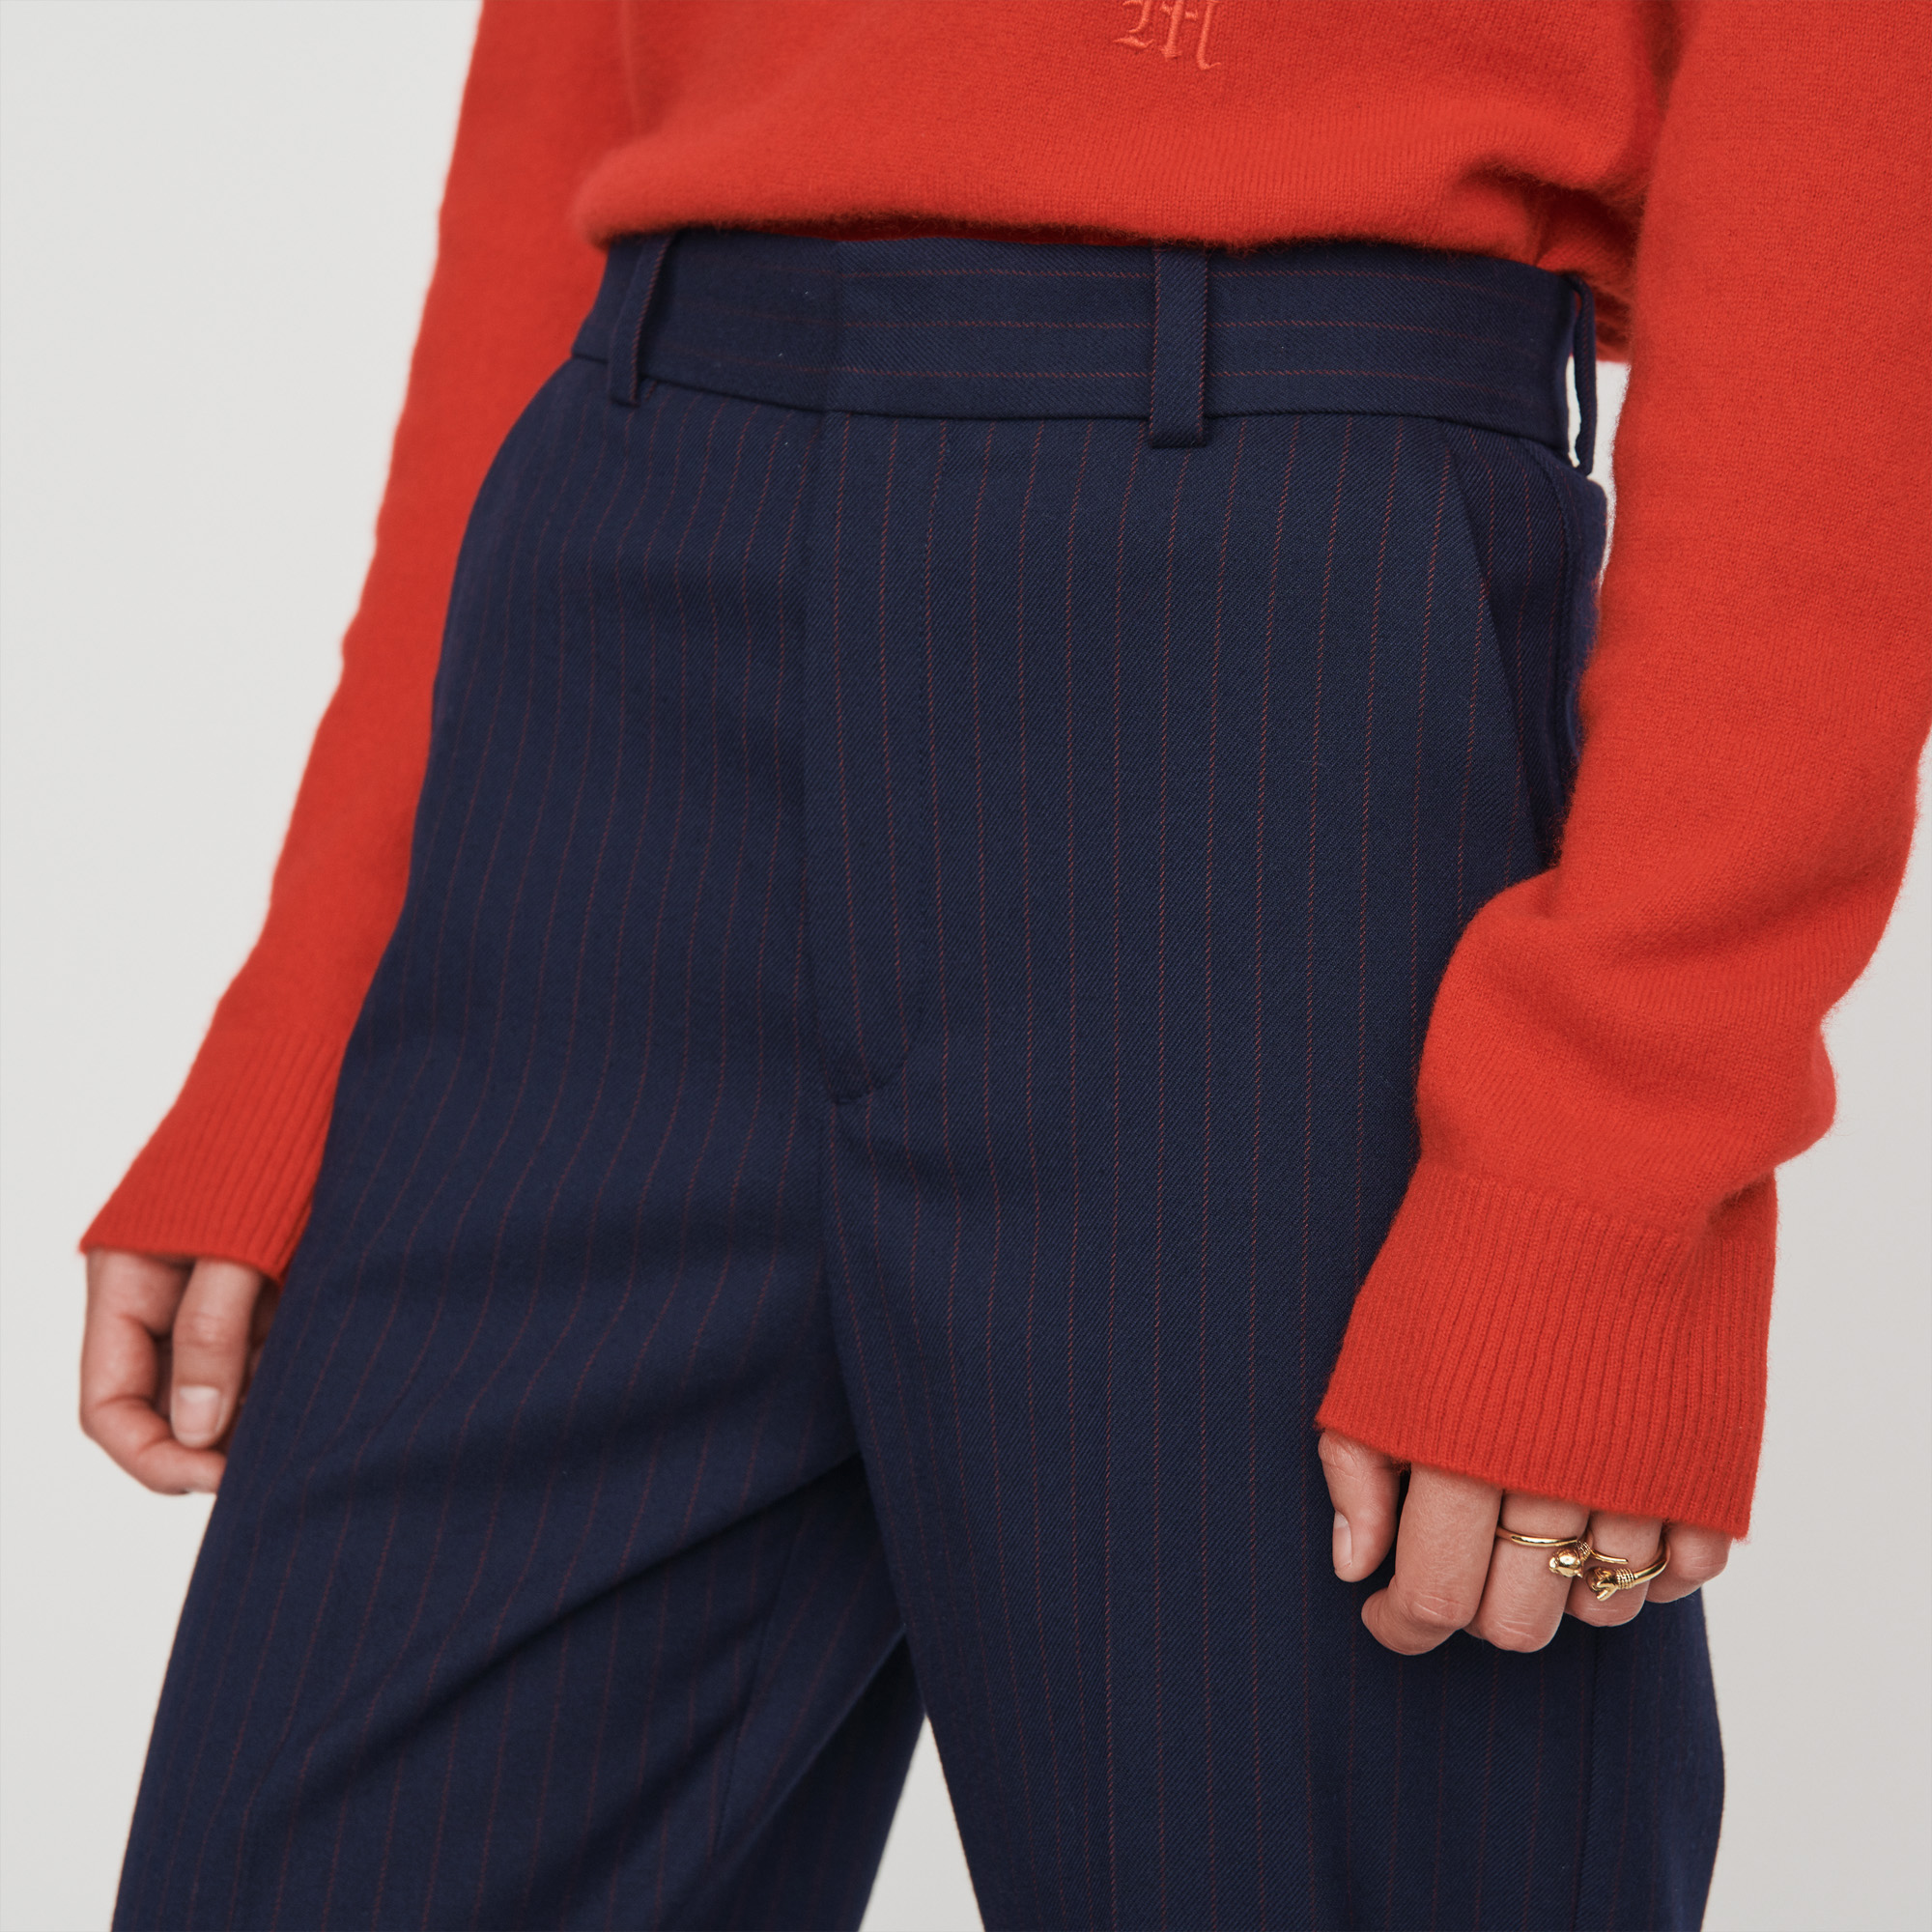 Straight Leg Pants With Racing Stripes - Navy